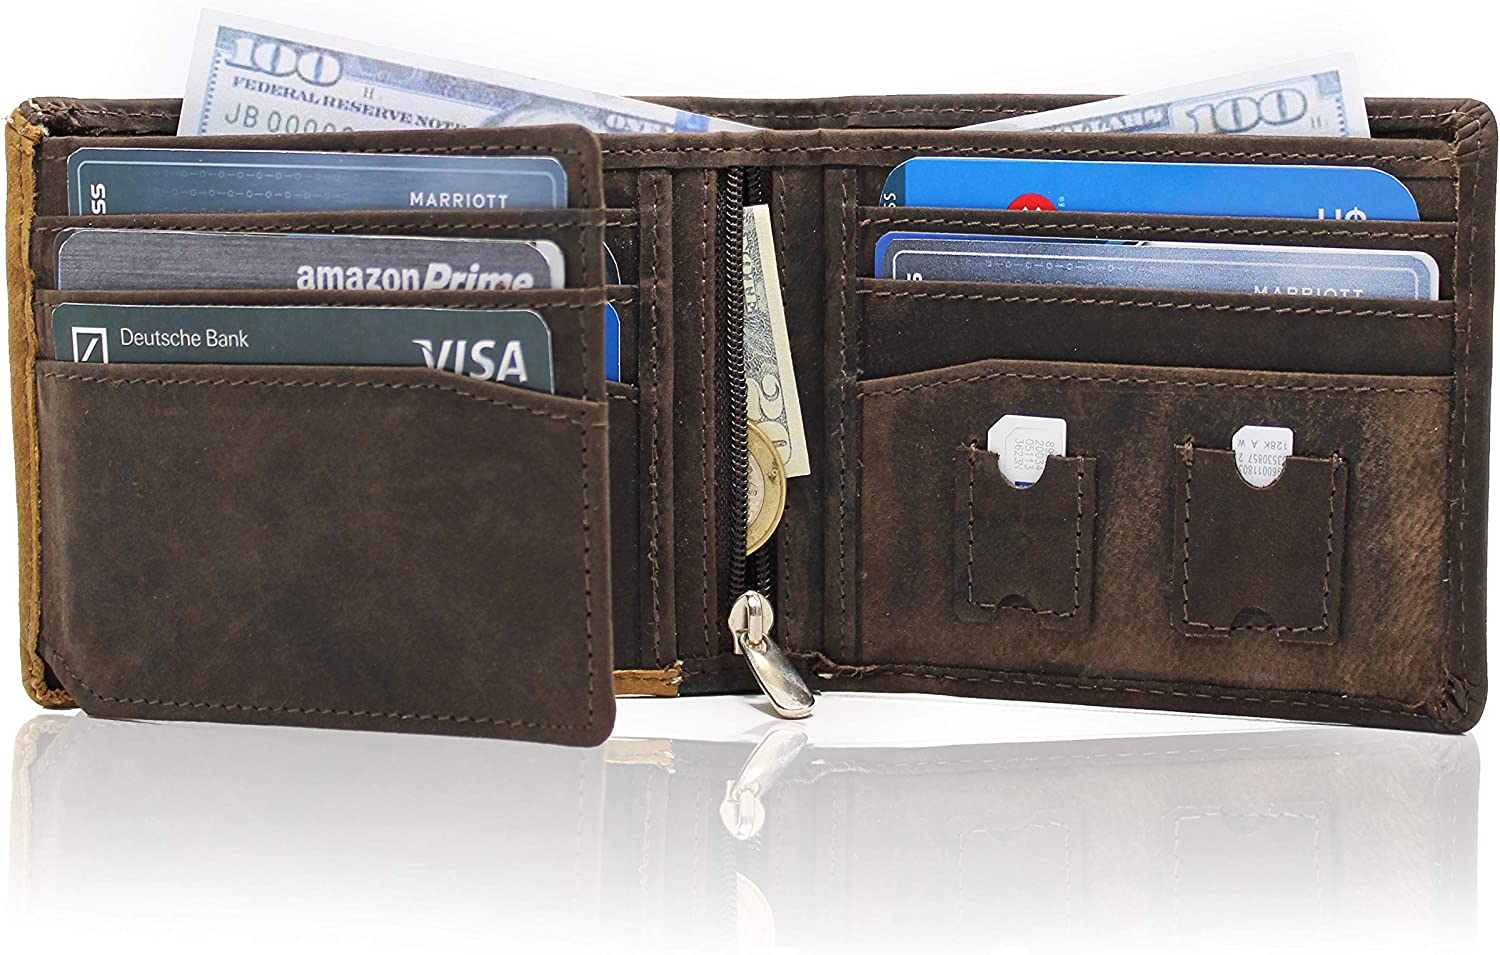 Bifold Wallet Premium Leather - in dual color ID Flap & inside Zipper with RFID blocking - Dark Brown/Yellow color by Birch